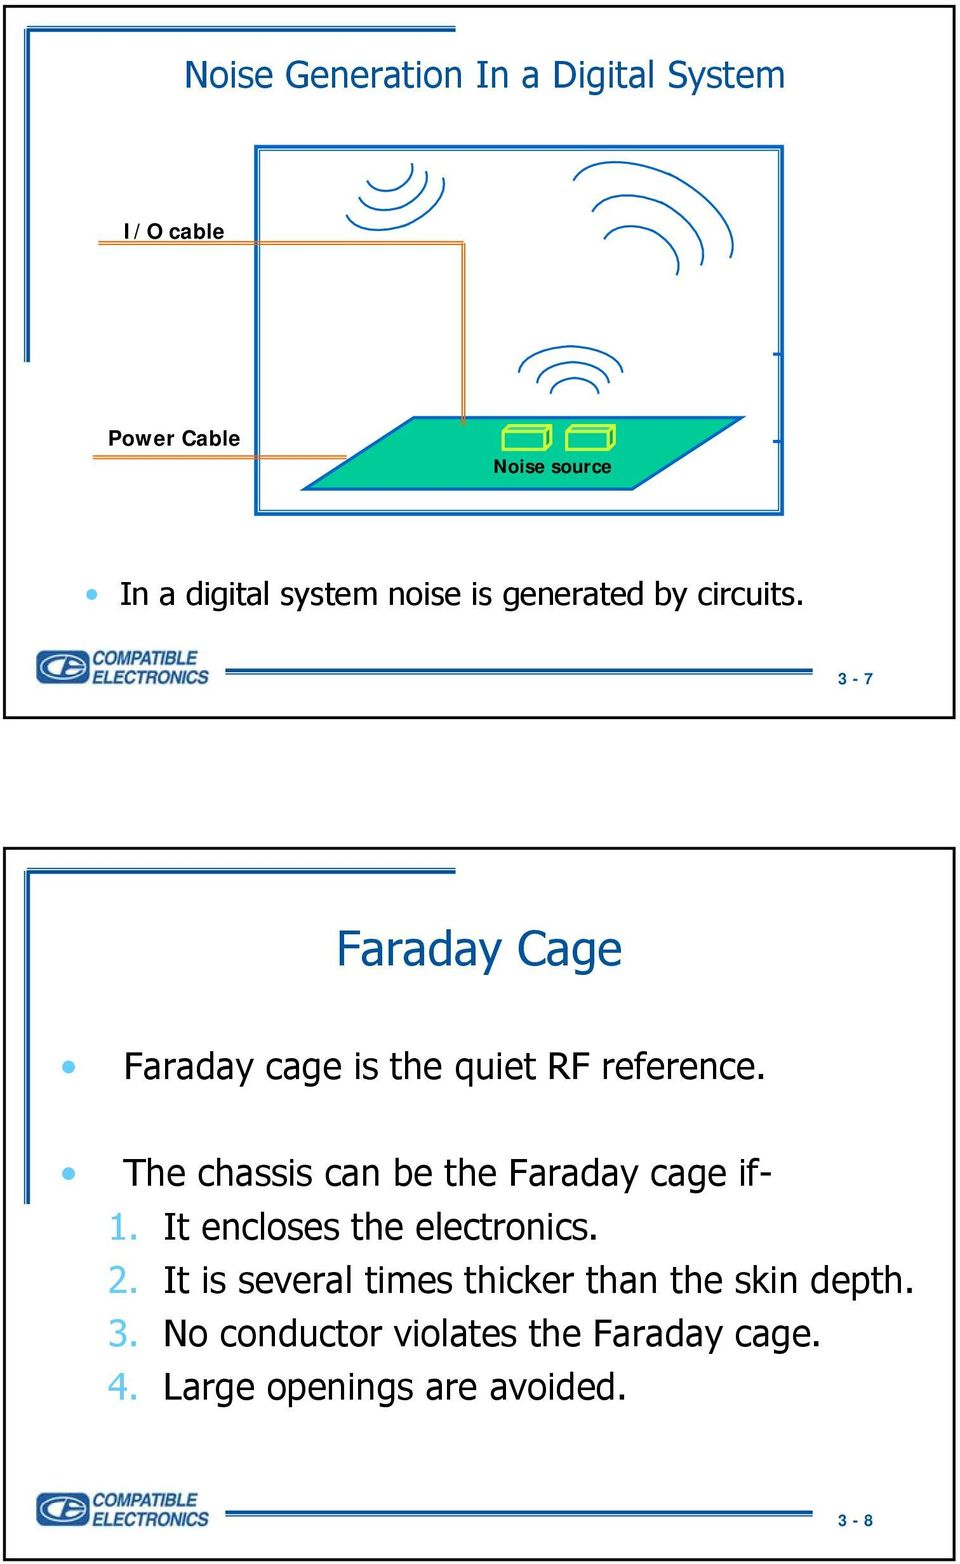 The chassis can be the Faraday cage if- 1. It encloses the electronics. 2.